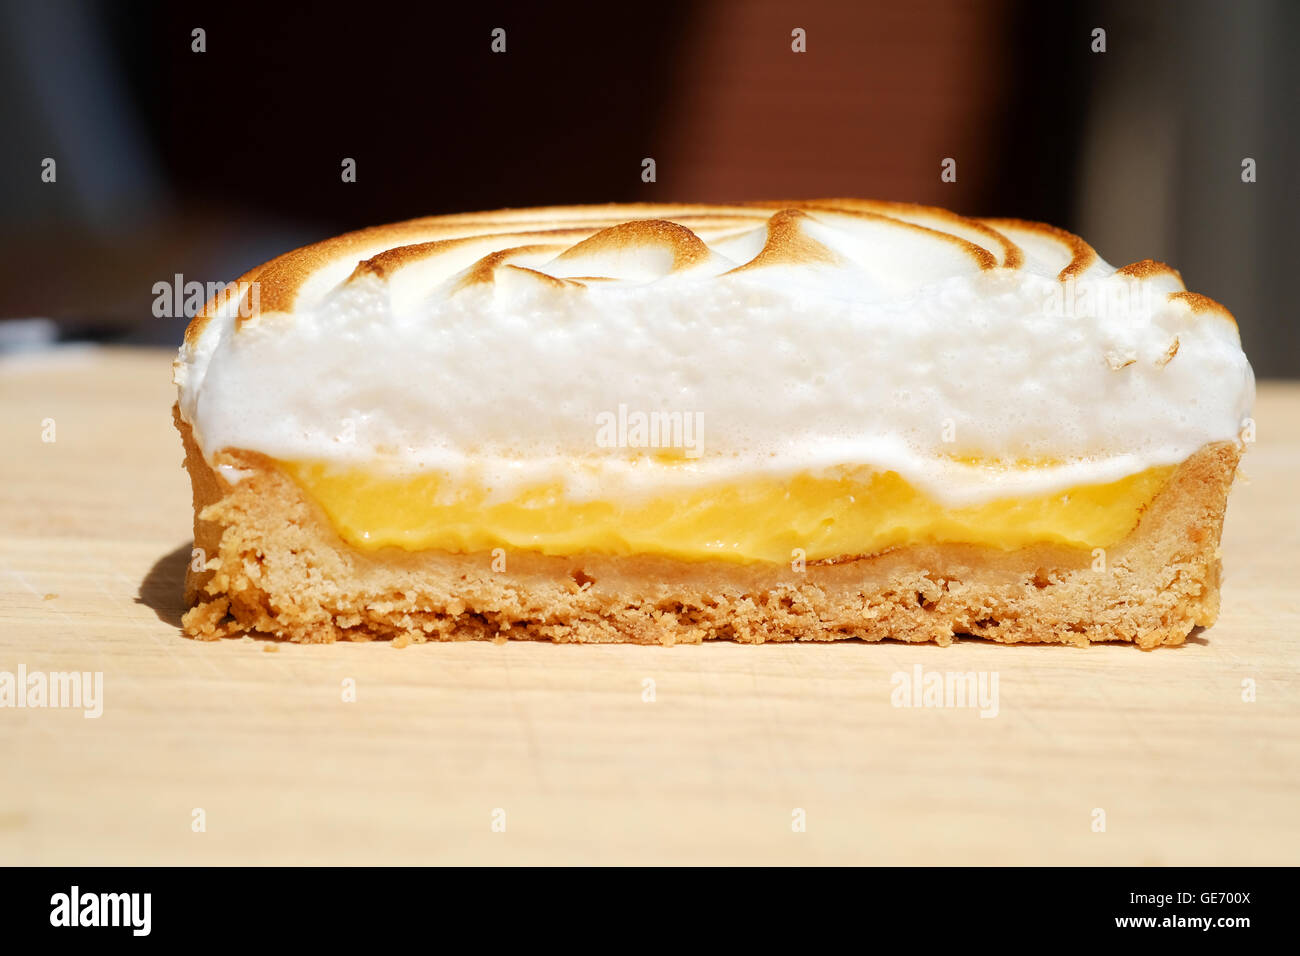 A delicious looking of Lemon Meringue cake - Stock Image